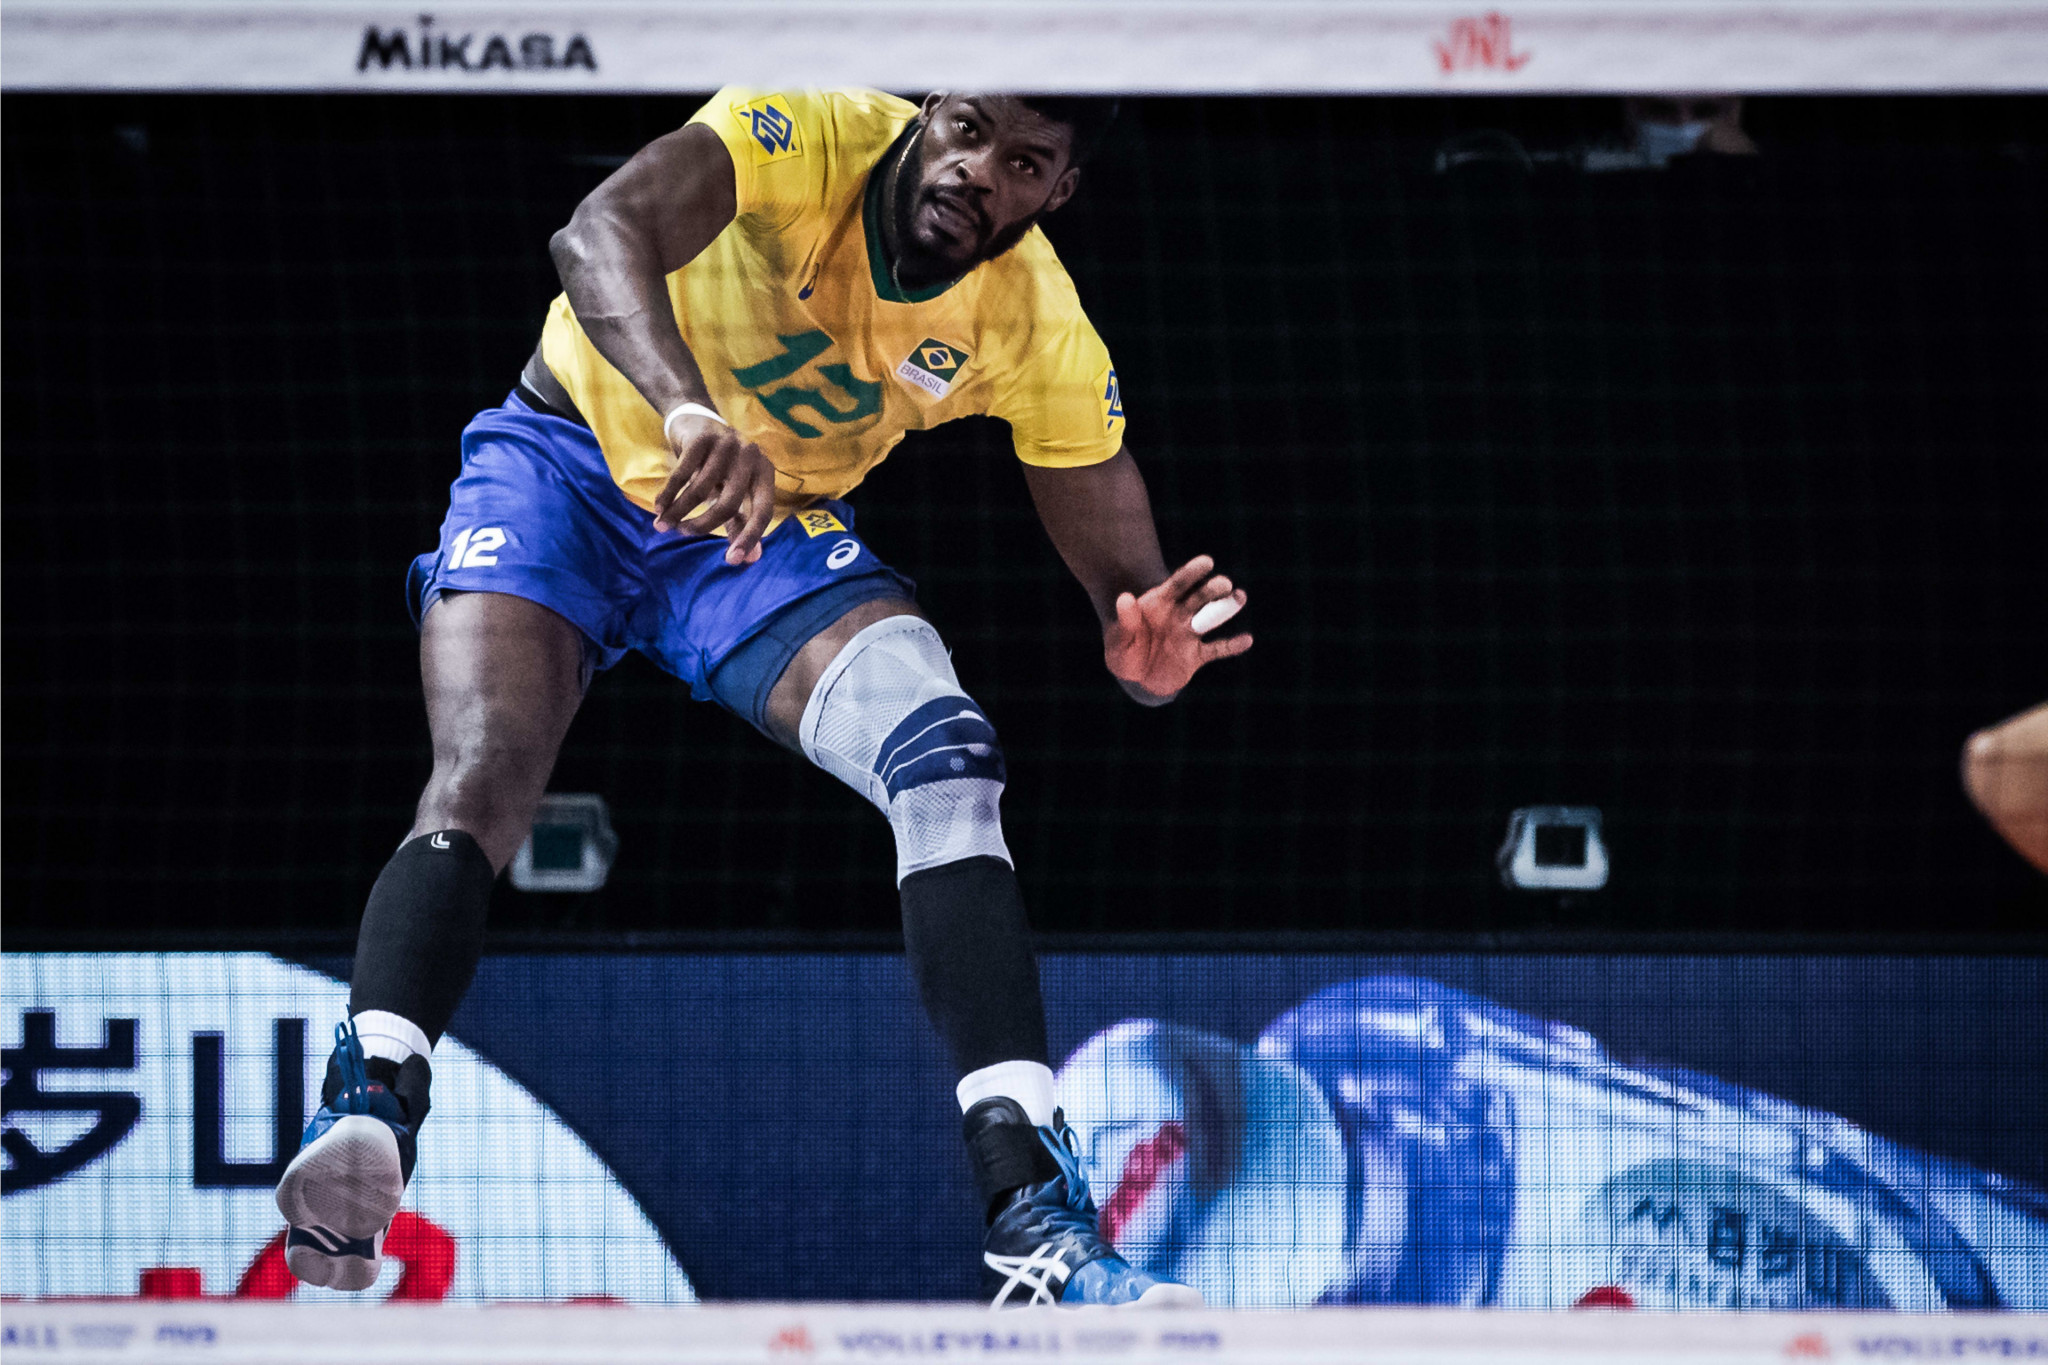 Brazil lead standings with two days remaining of men's Volleyball Nations League preliminary round